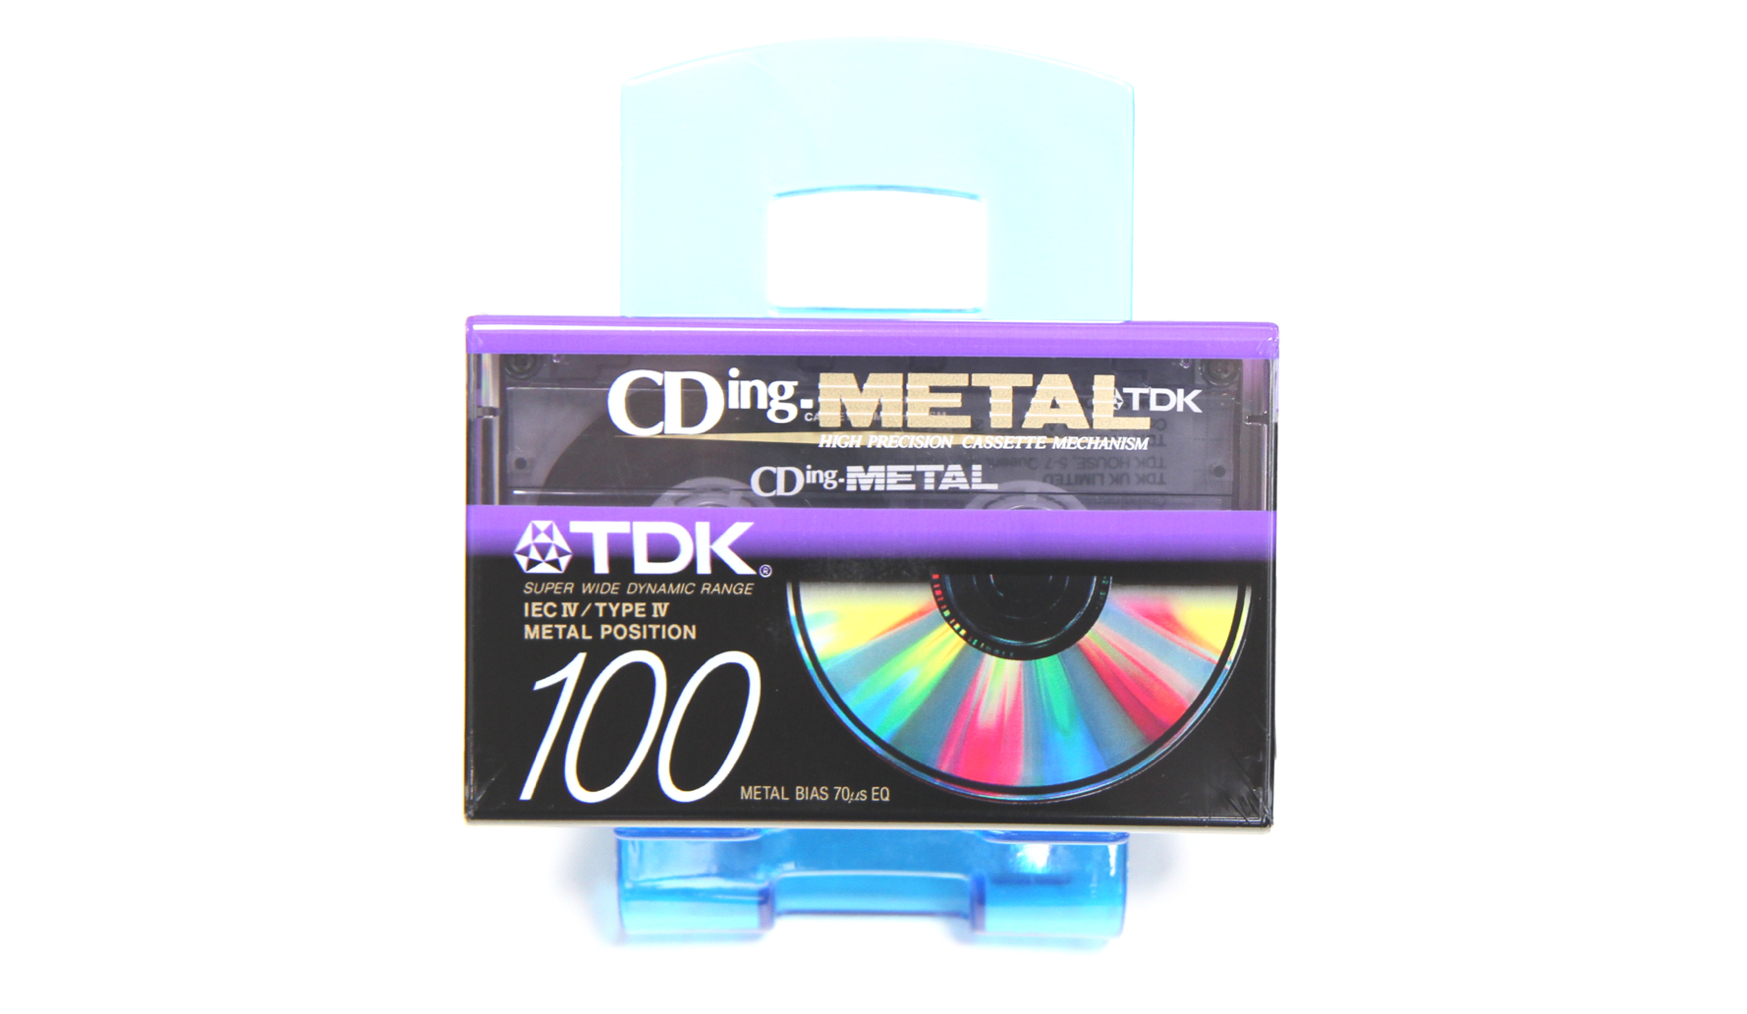 TDK CDingIV-100 Position Metal